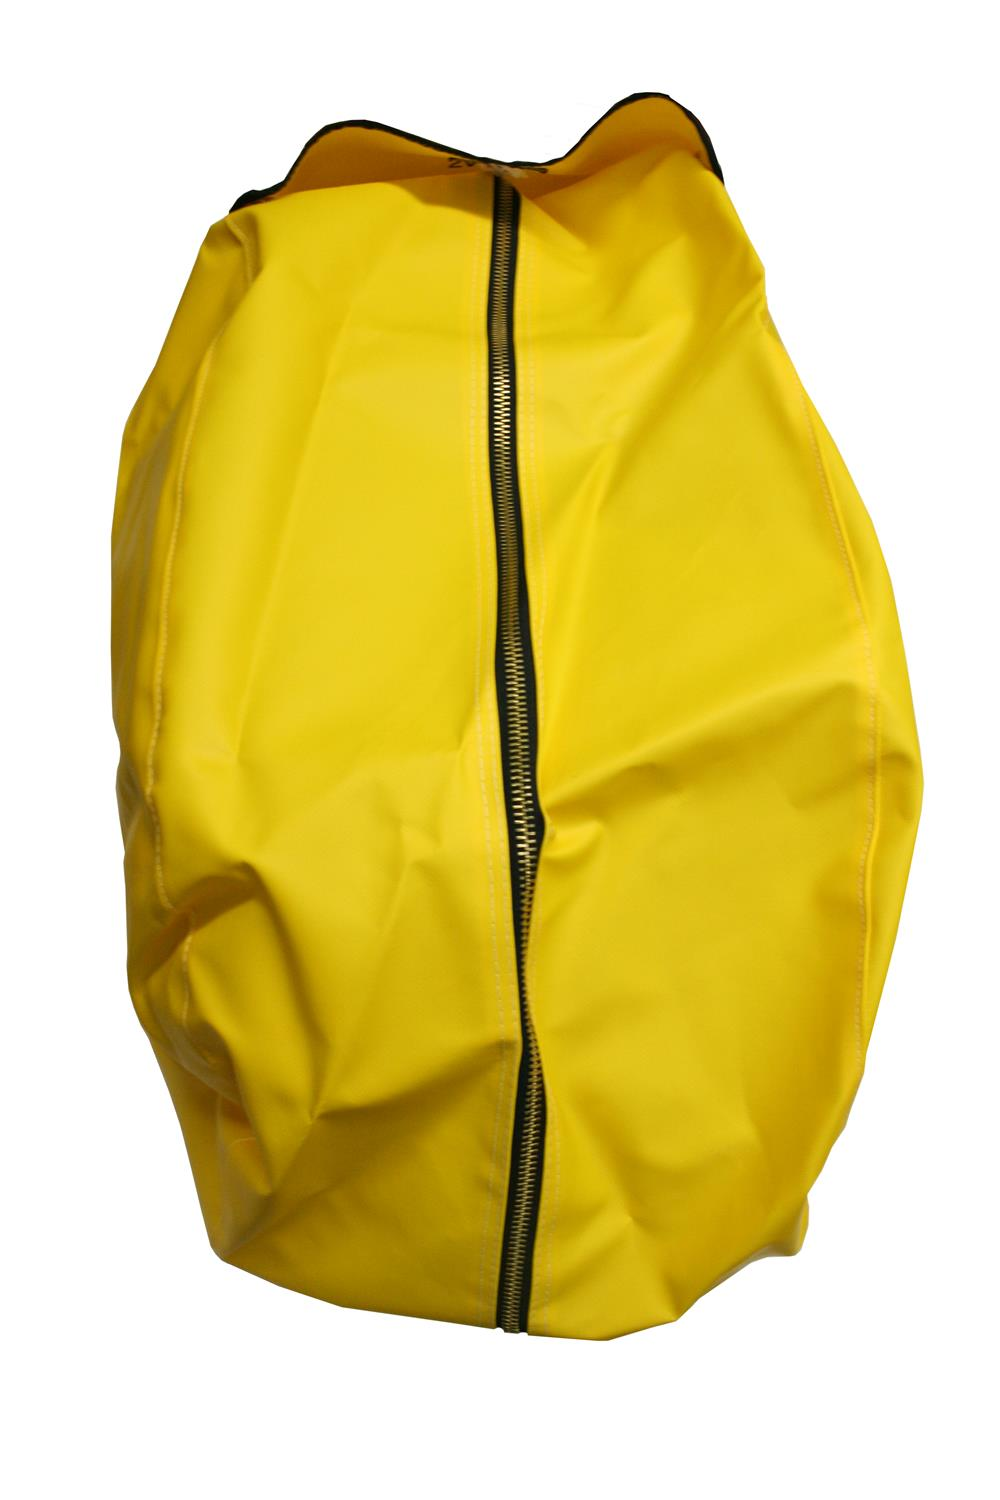 Zipper Vinyl SCBA Cover – Yellow